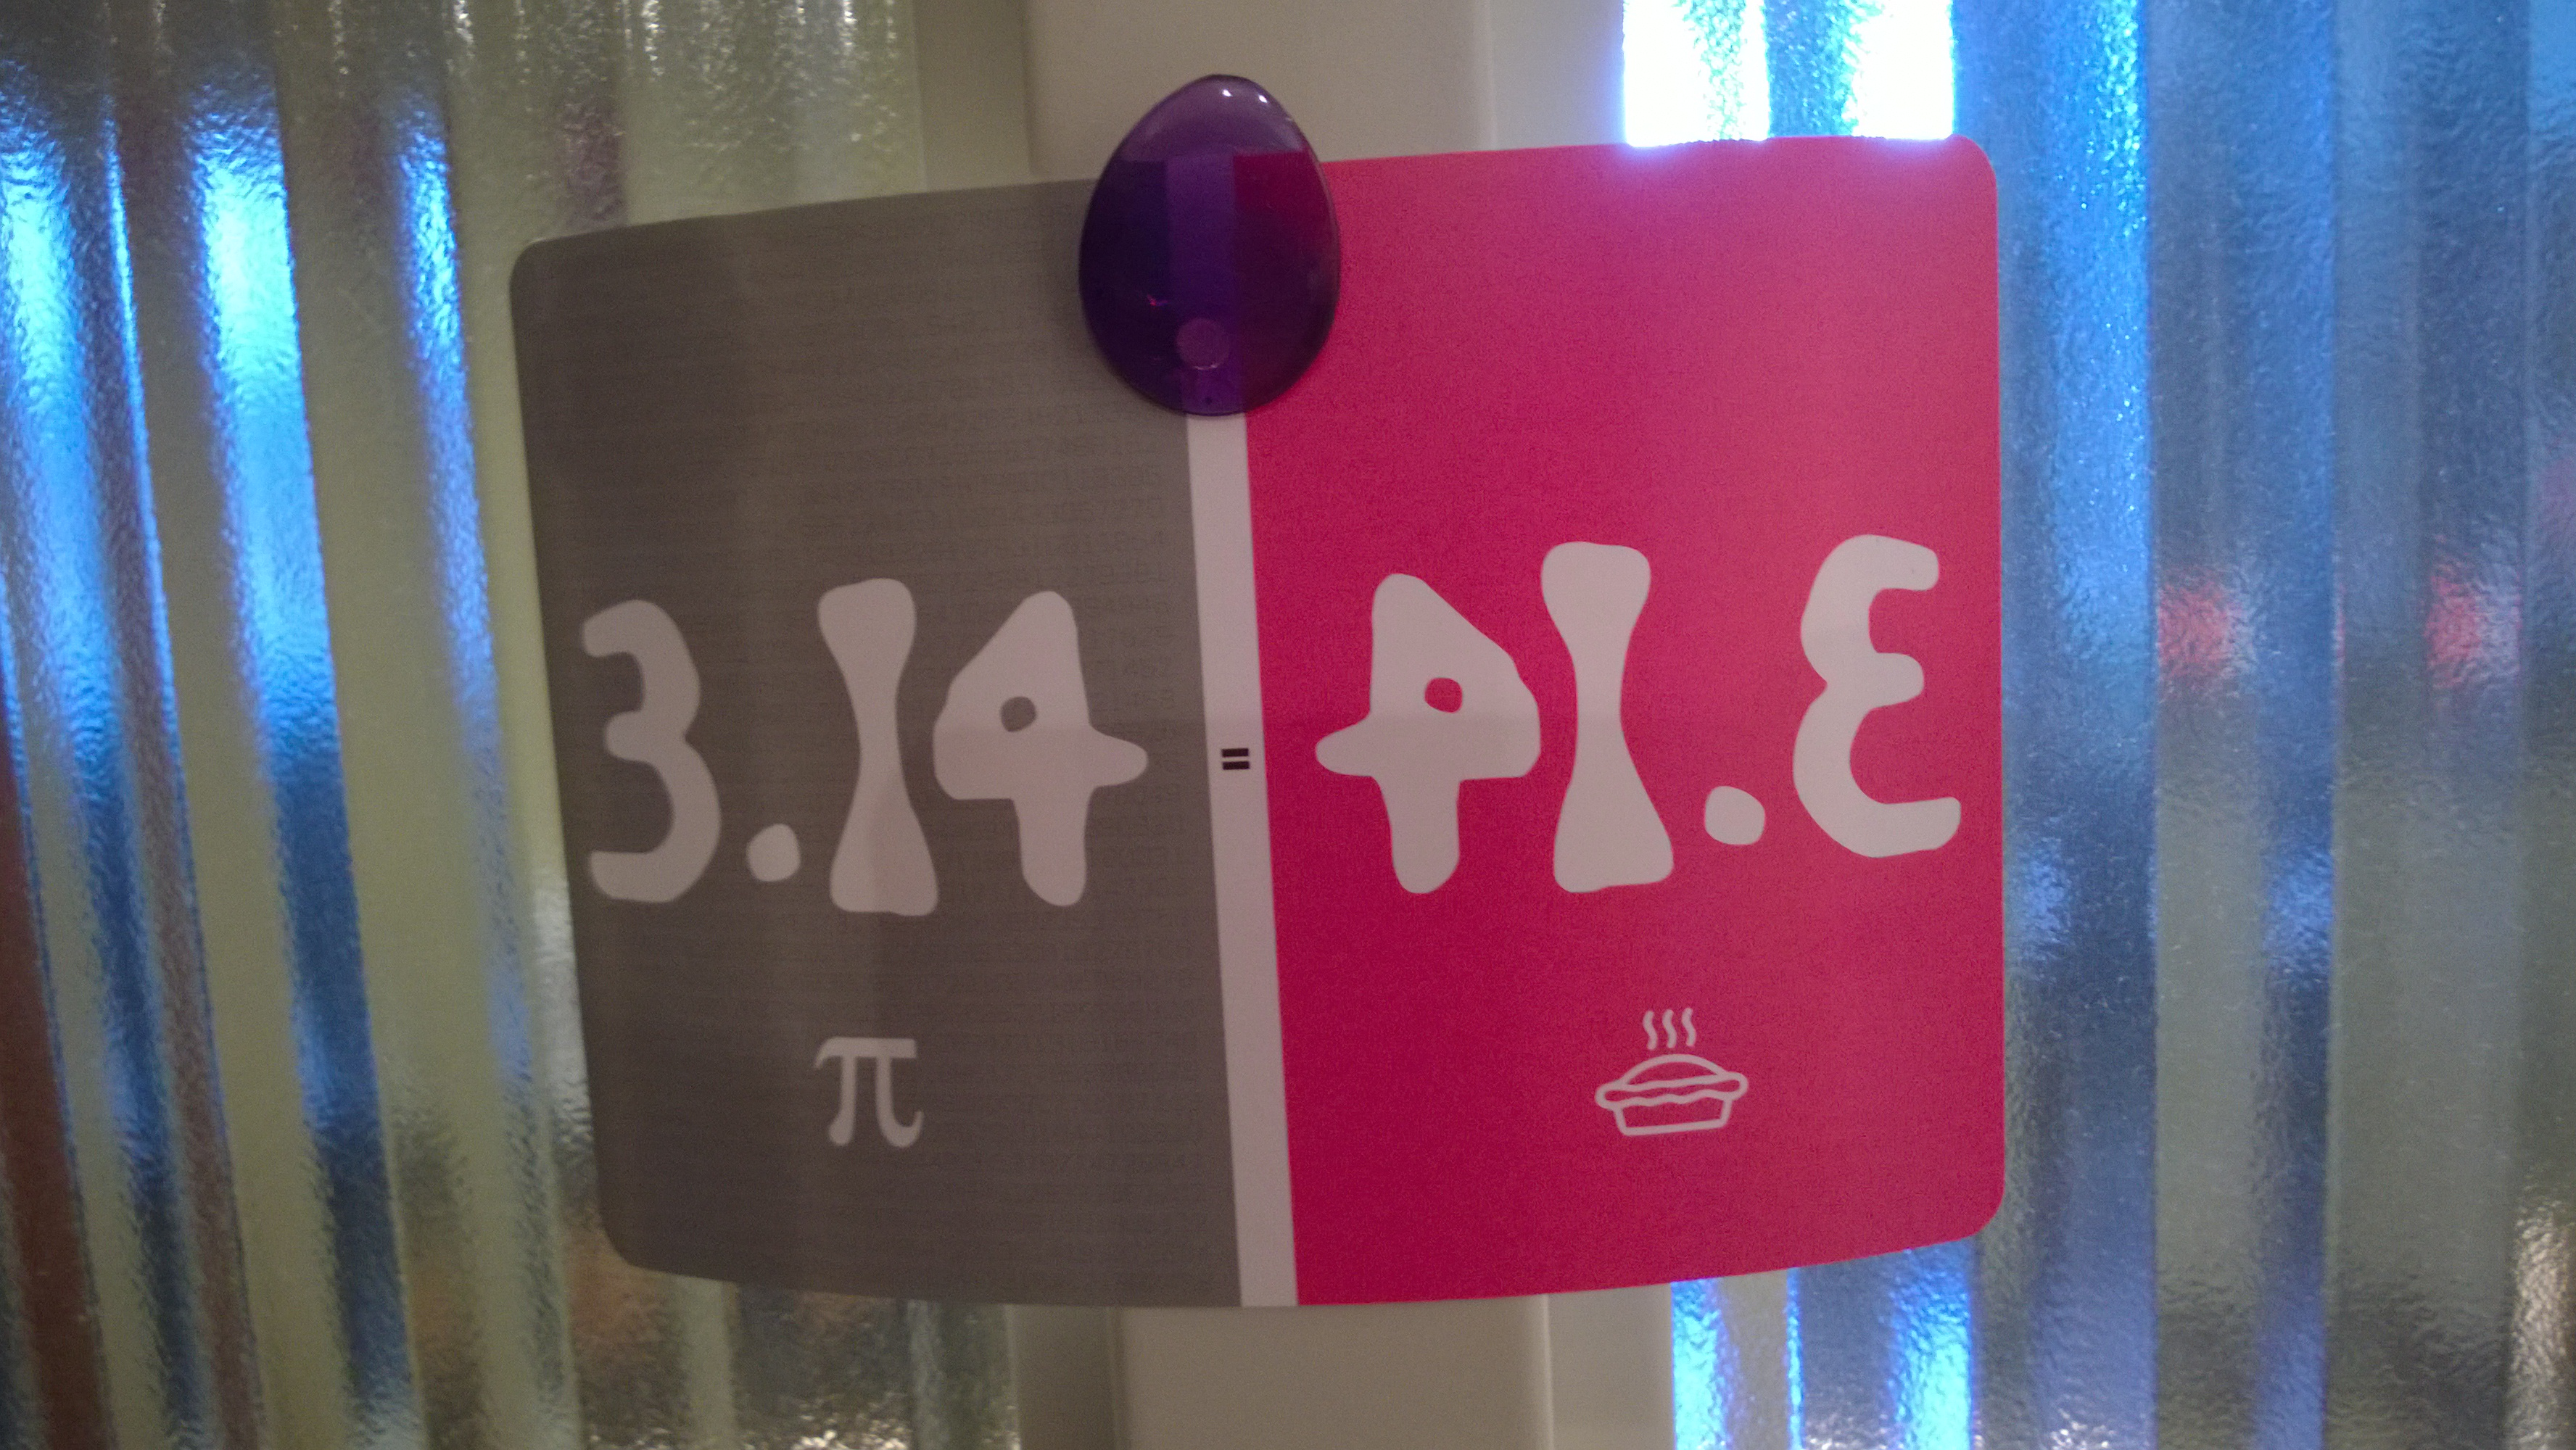 pi in numerals mirrored as pie spelled out